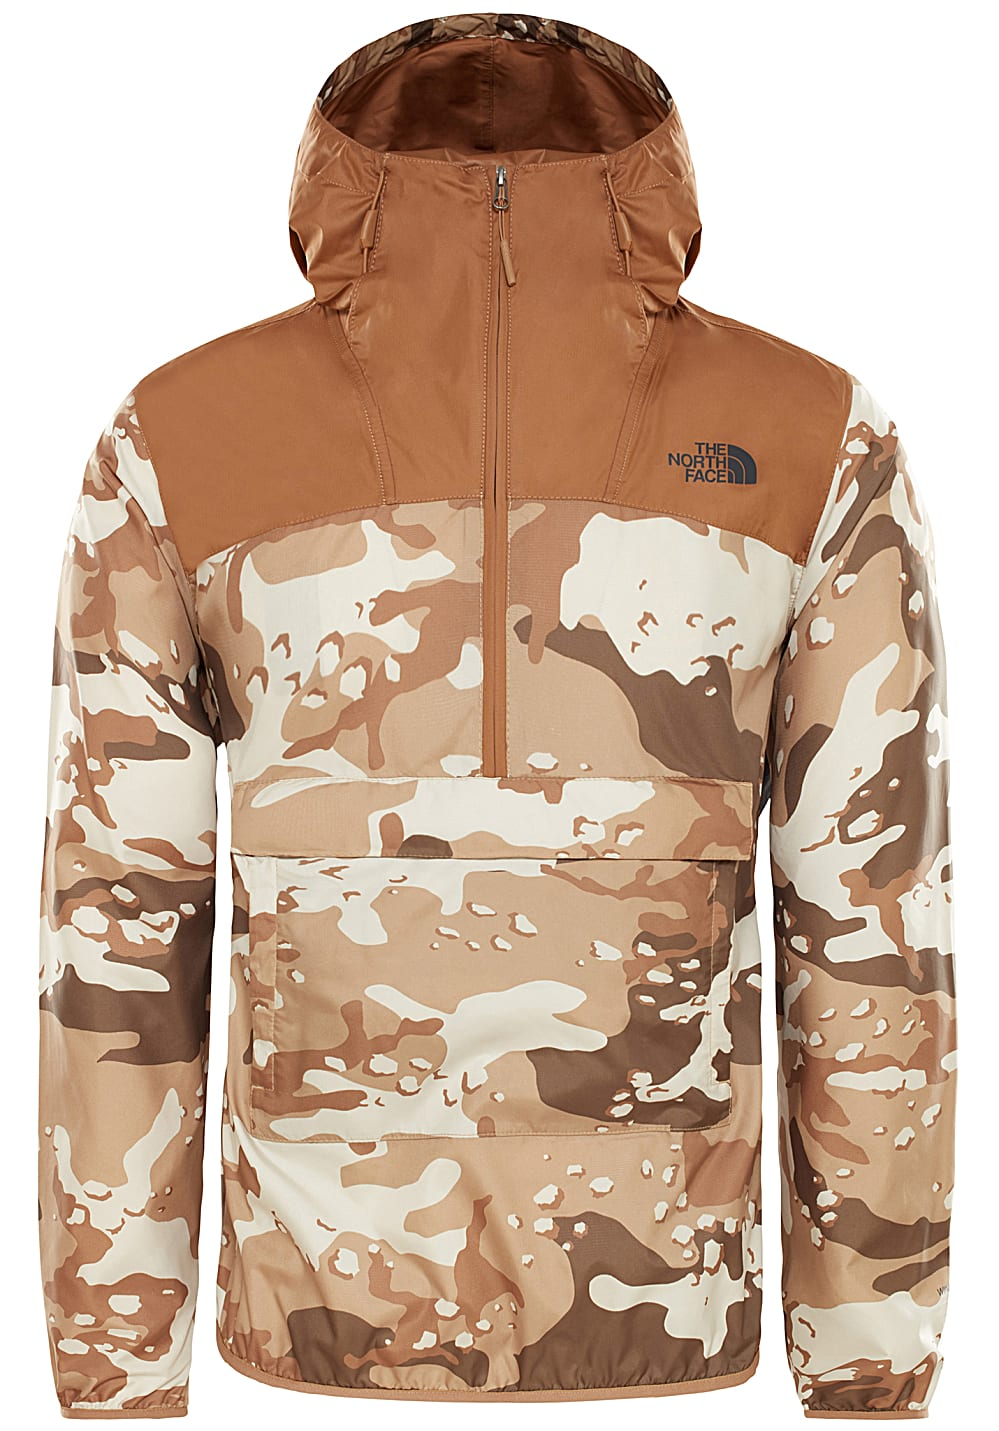 reputable site 90677 9a0f8 THE NORTH FACE Novelty Fanorak - Jacke für Herren - Braun